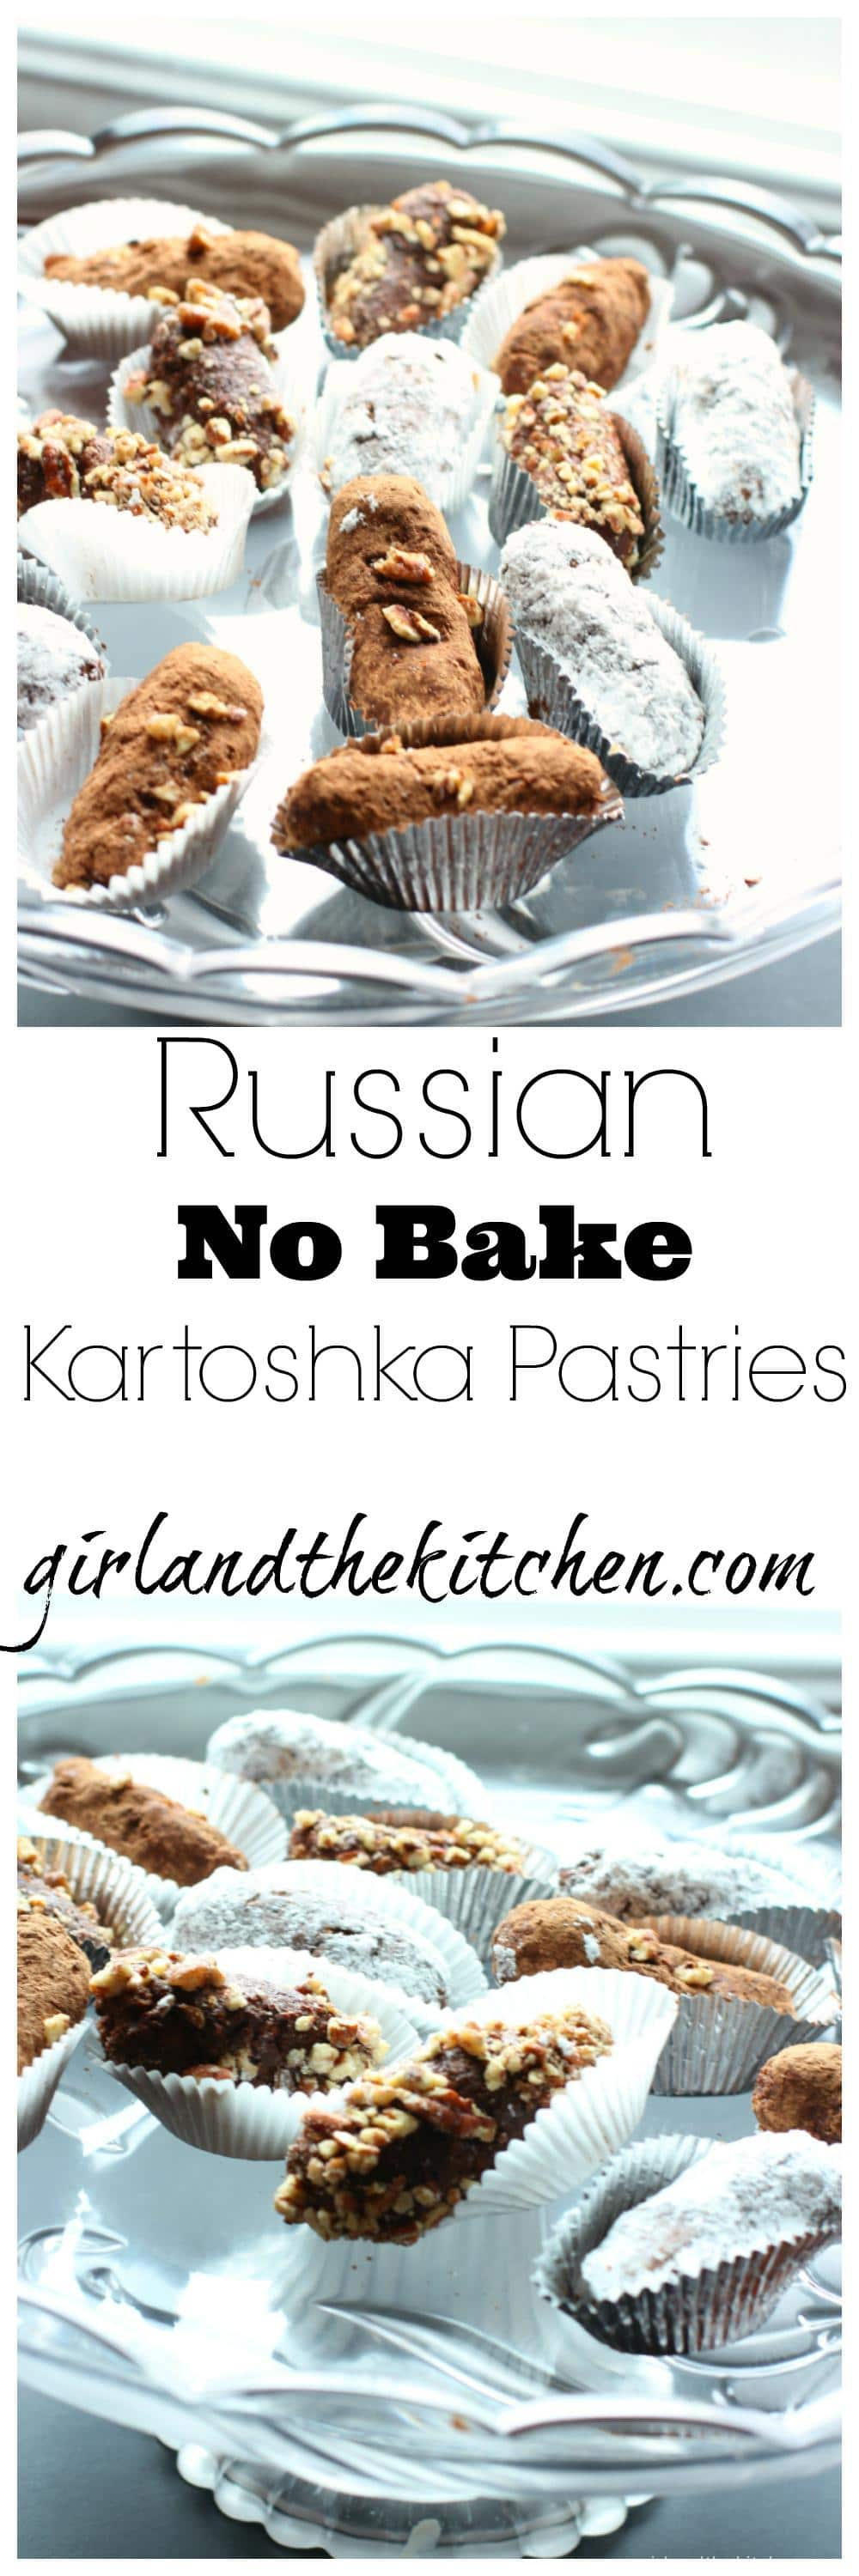 Russian Kartoshka Pastry  Collage